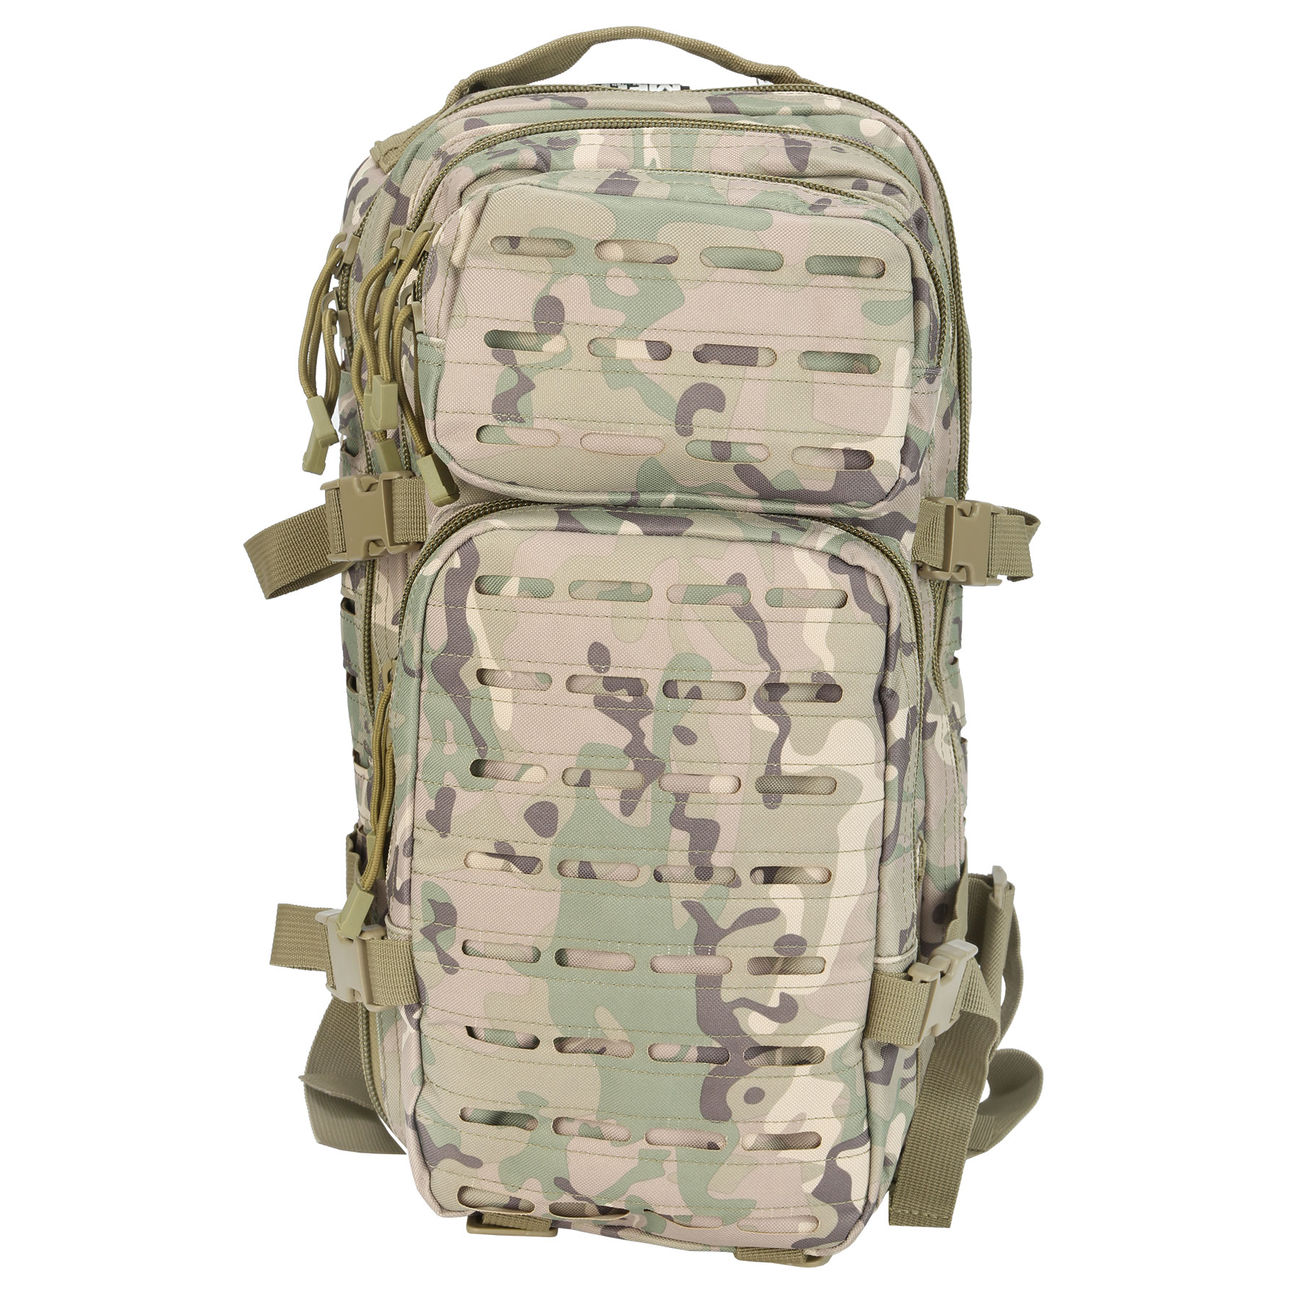 MFH Rucksack US Assault I Laser 30L operation-camo 6